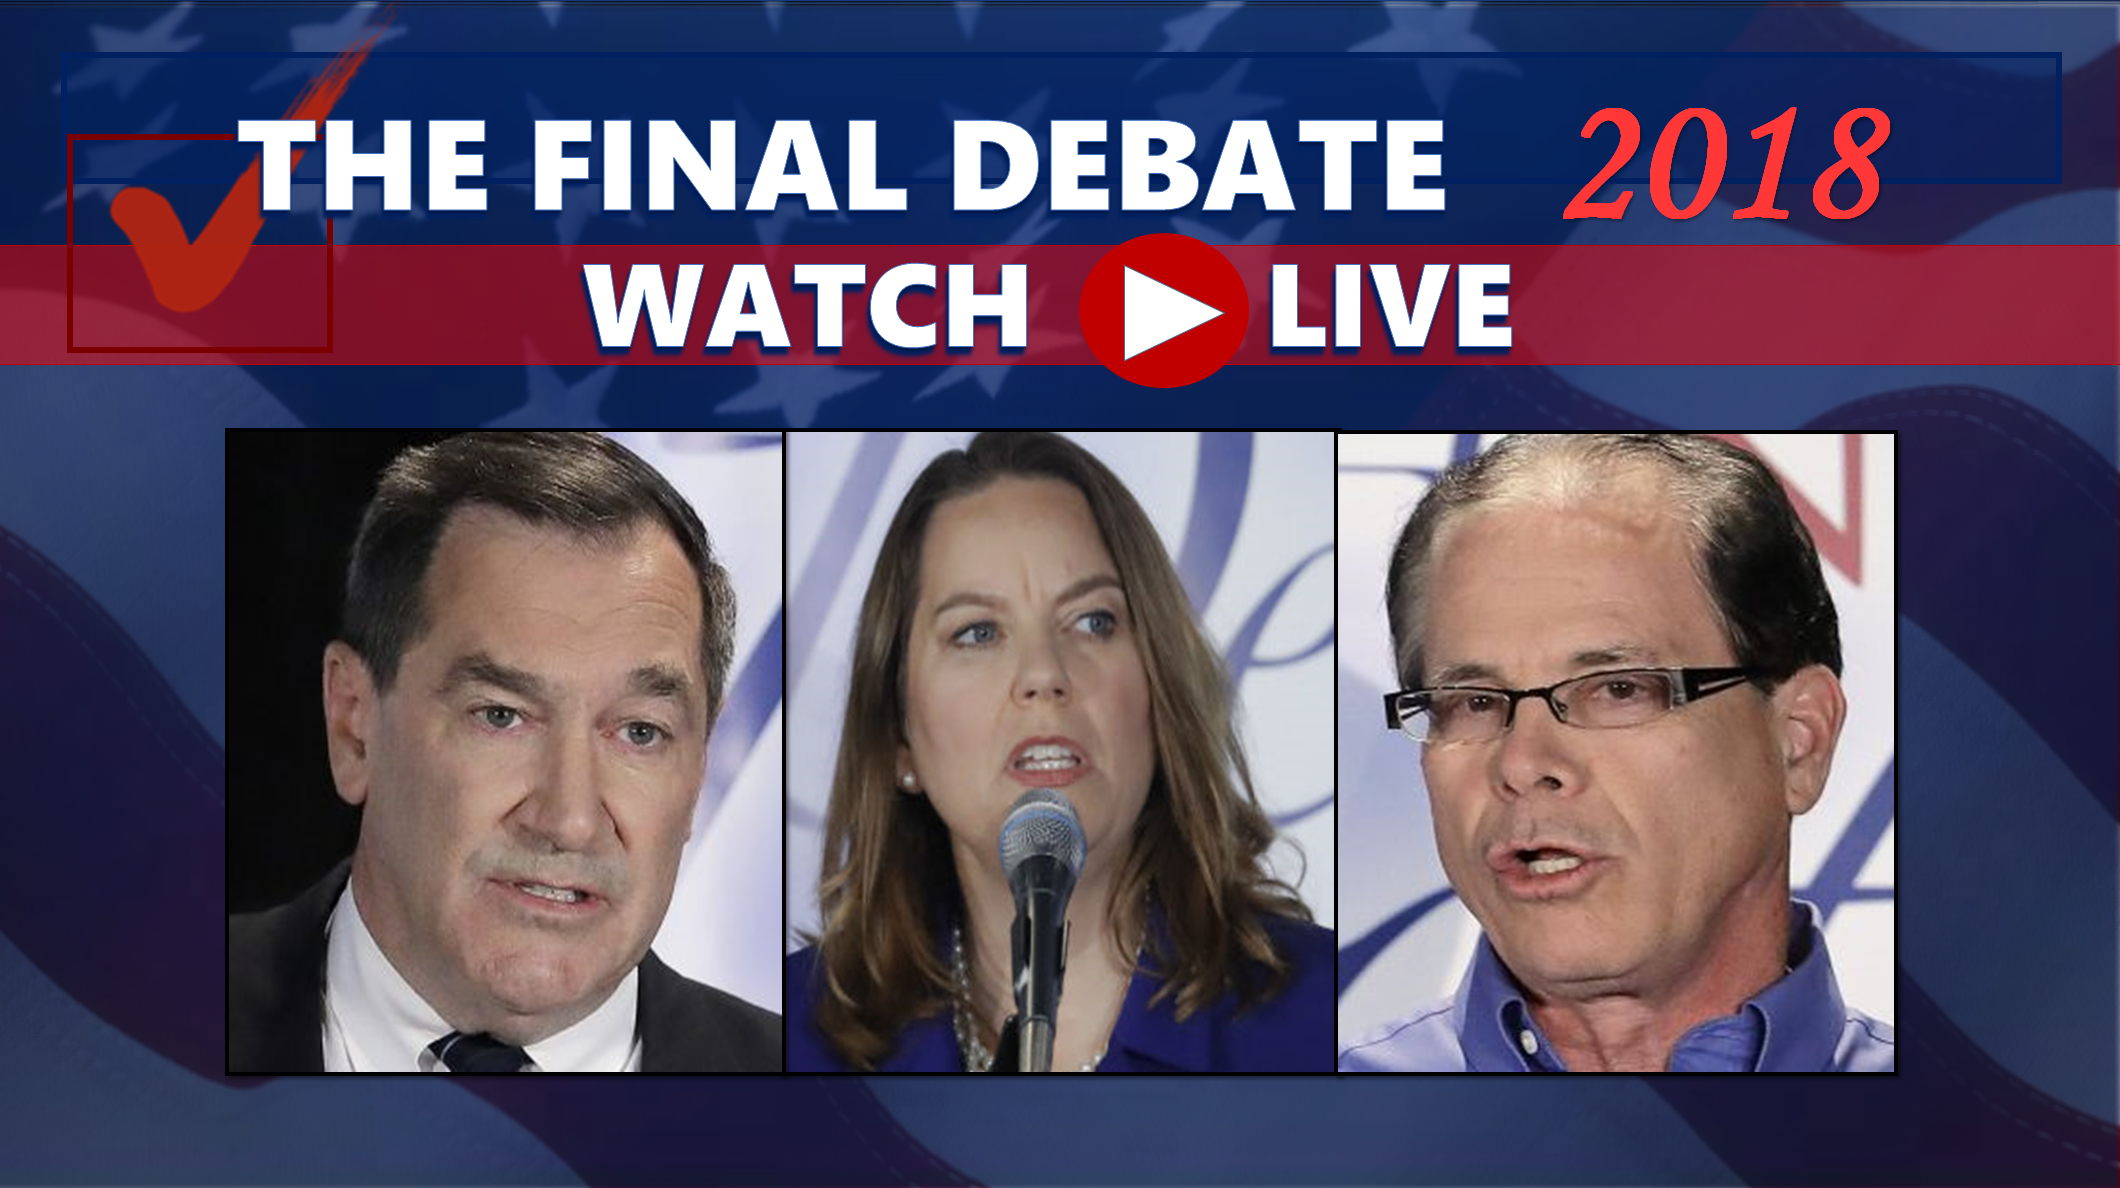 WATCH LIVE:  The Final U.S. Senate Debate Begins at 7 p.m. EDT